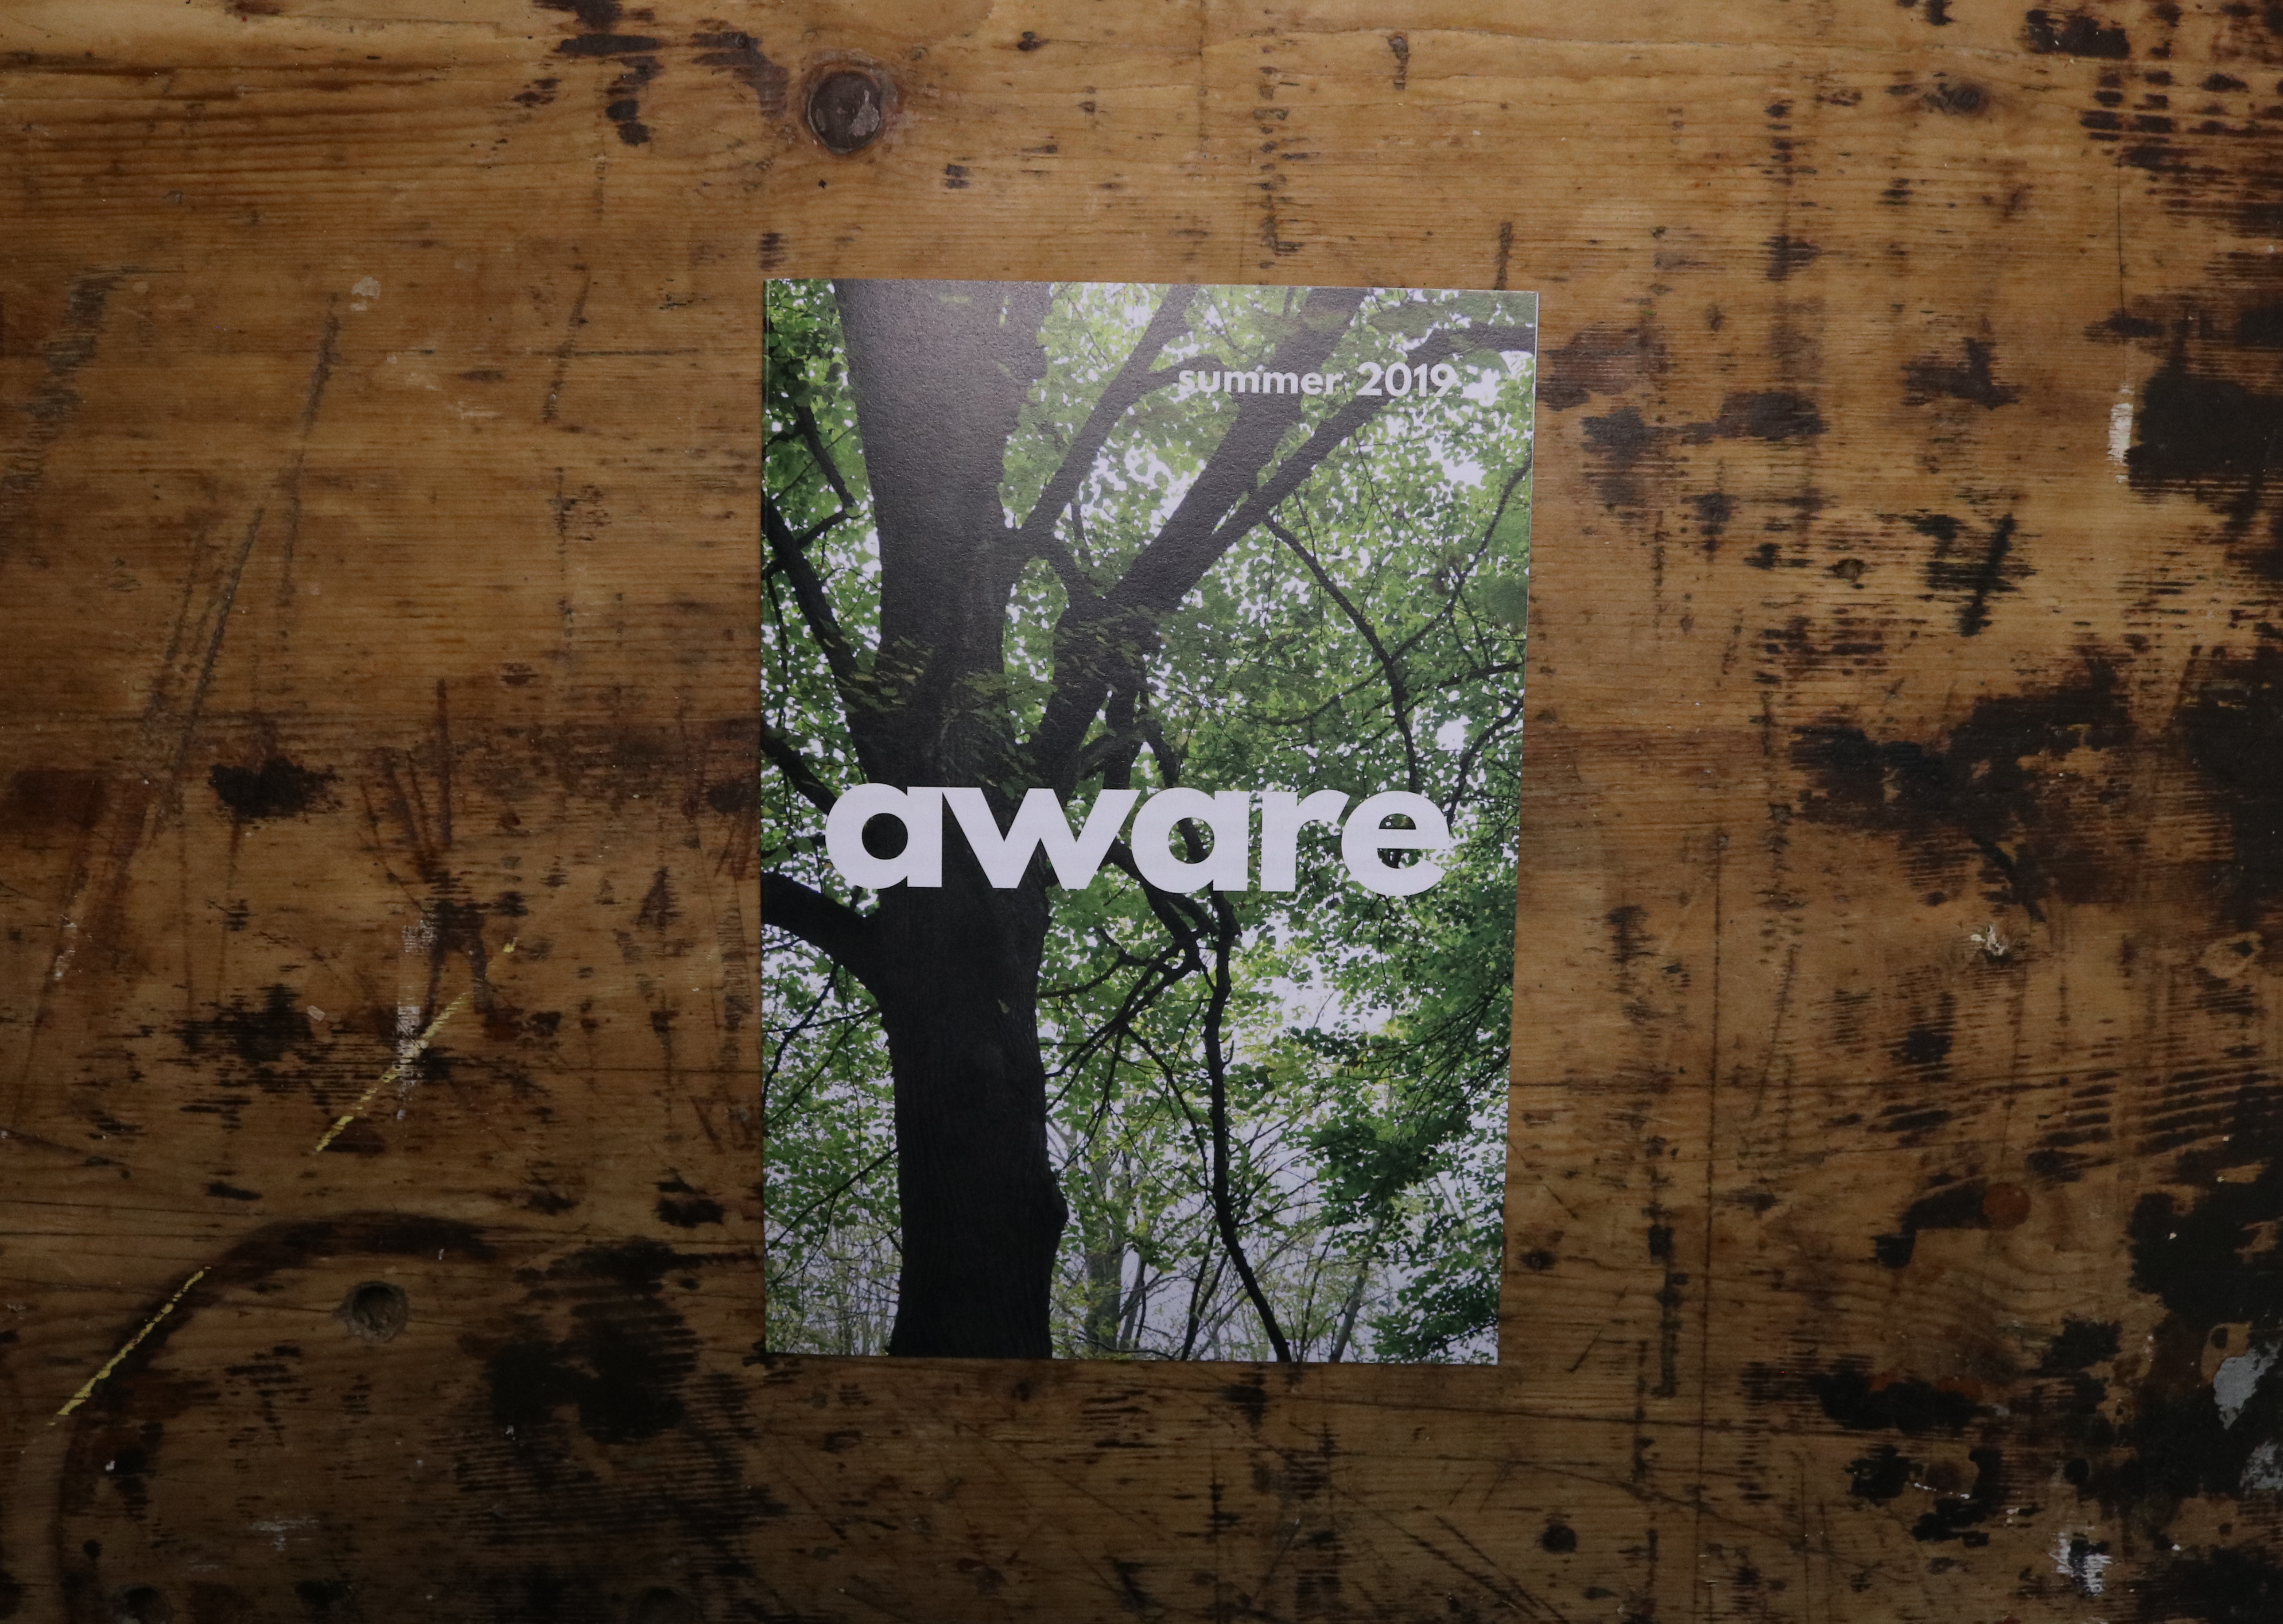 Aware: Sustainability and Werfzeep: an interview